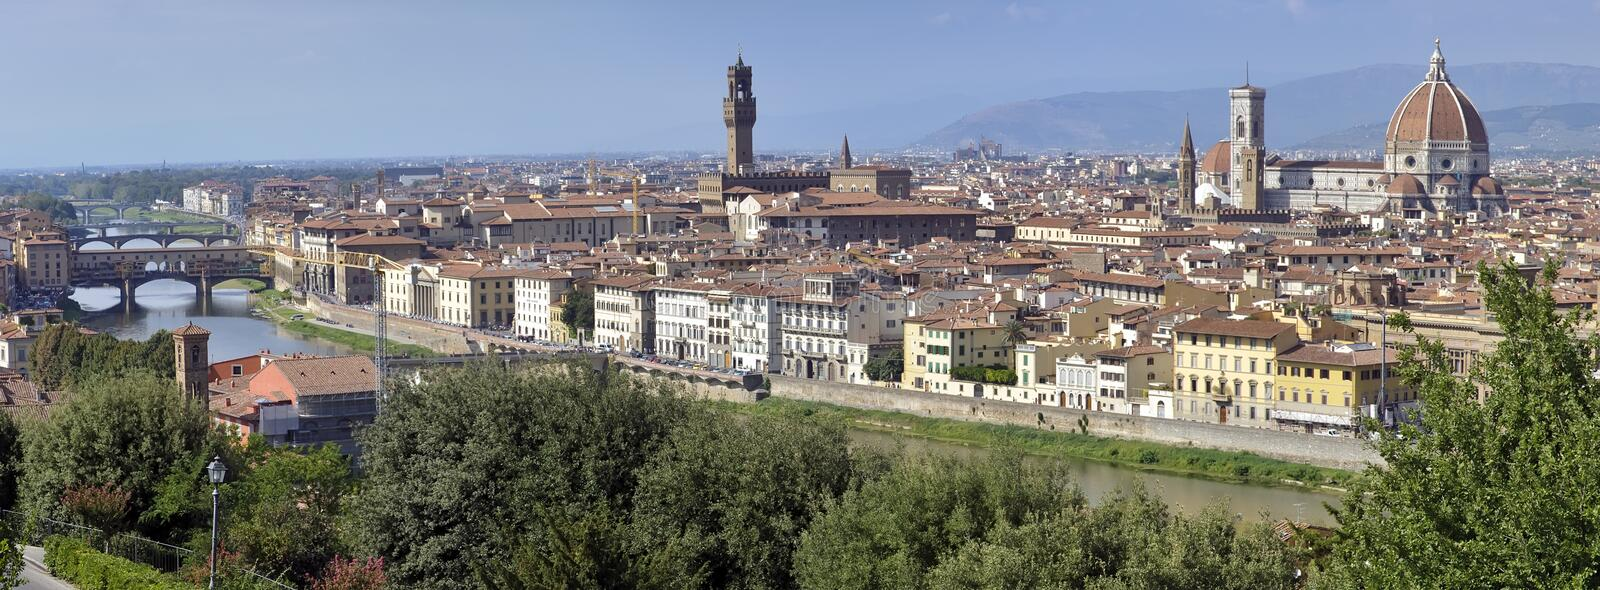 Panorama of Florence, Italy royalty free stock image